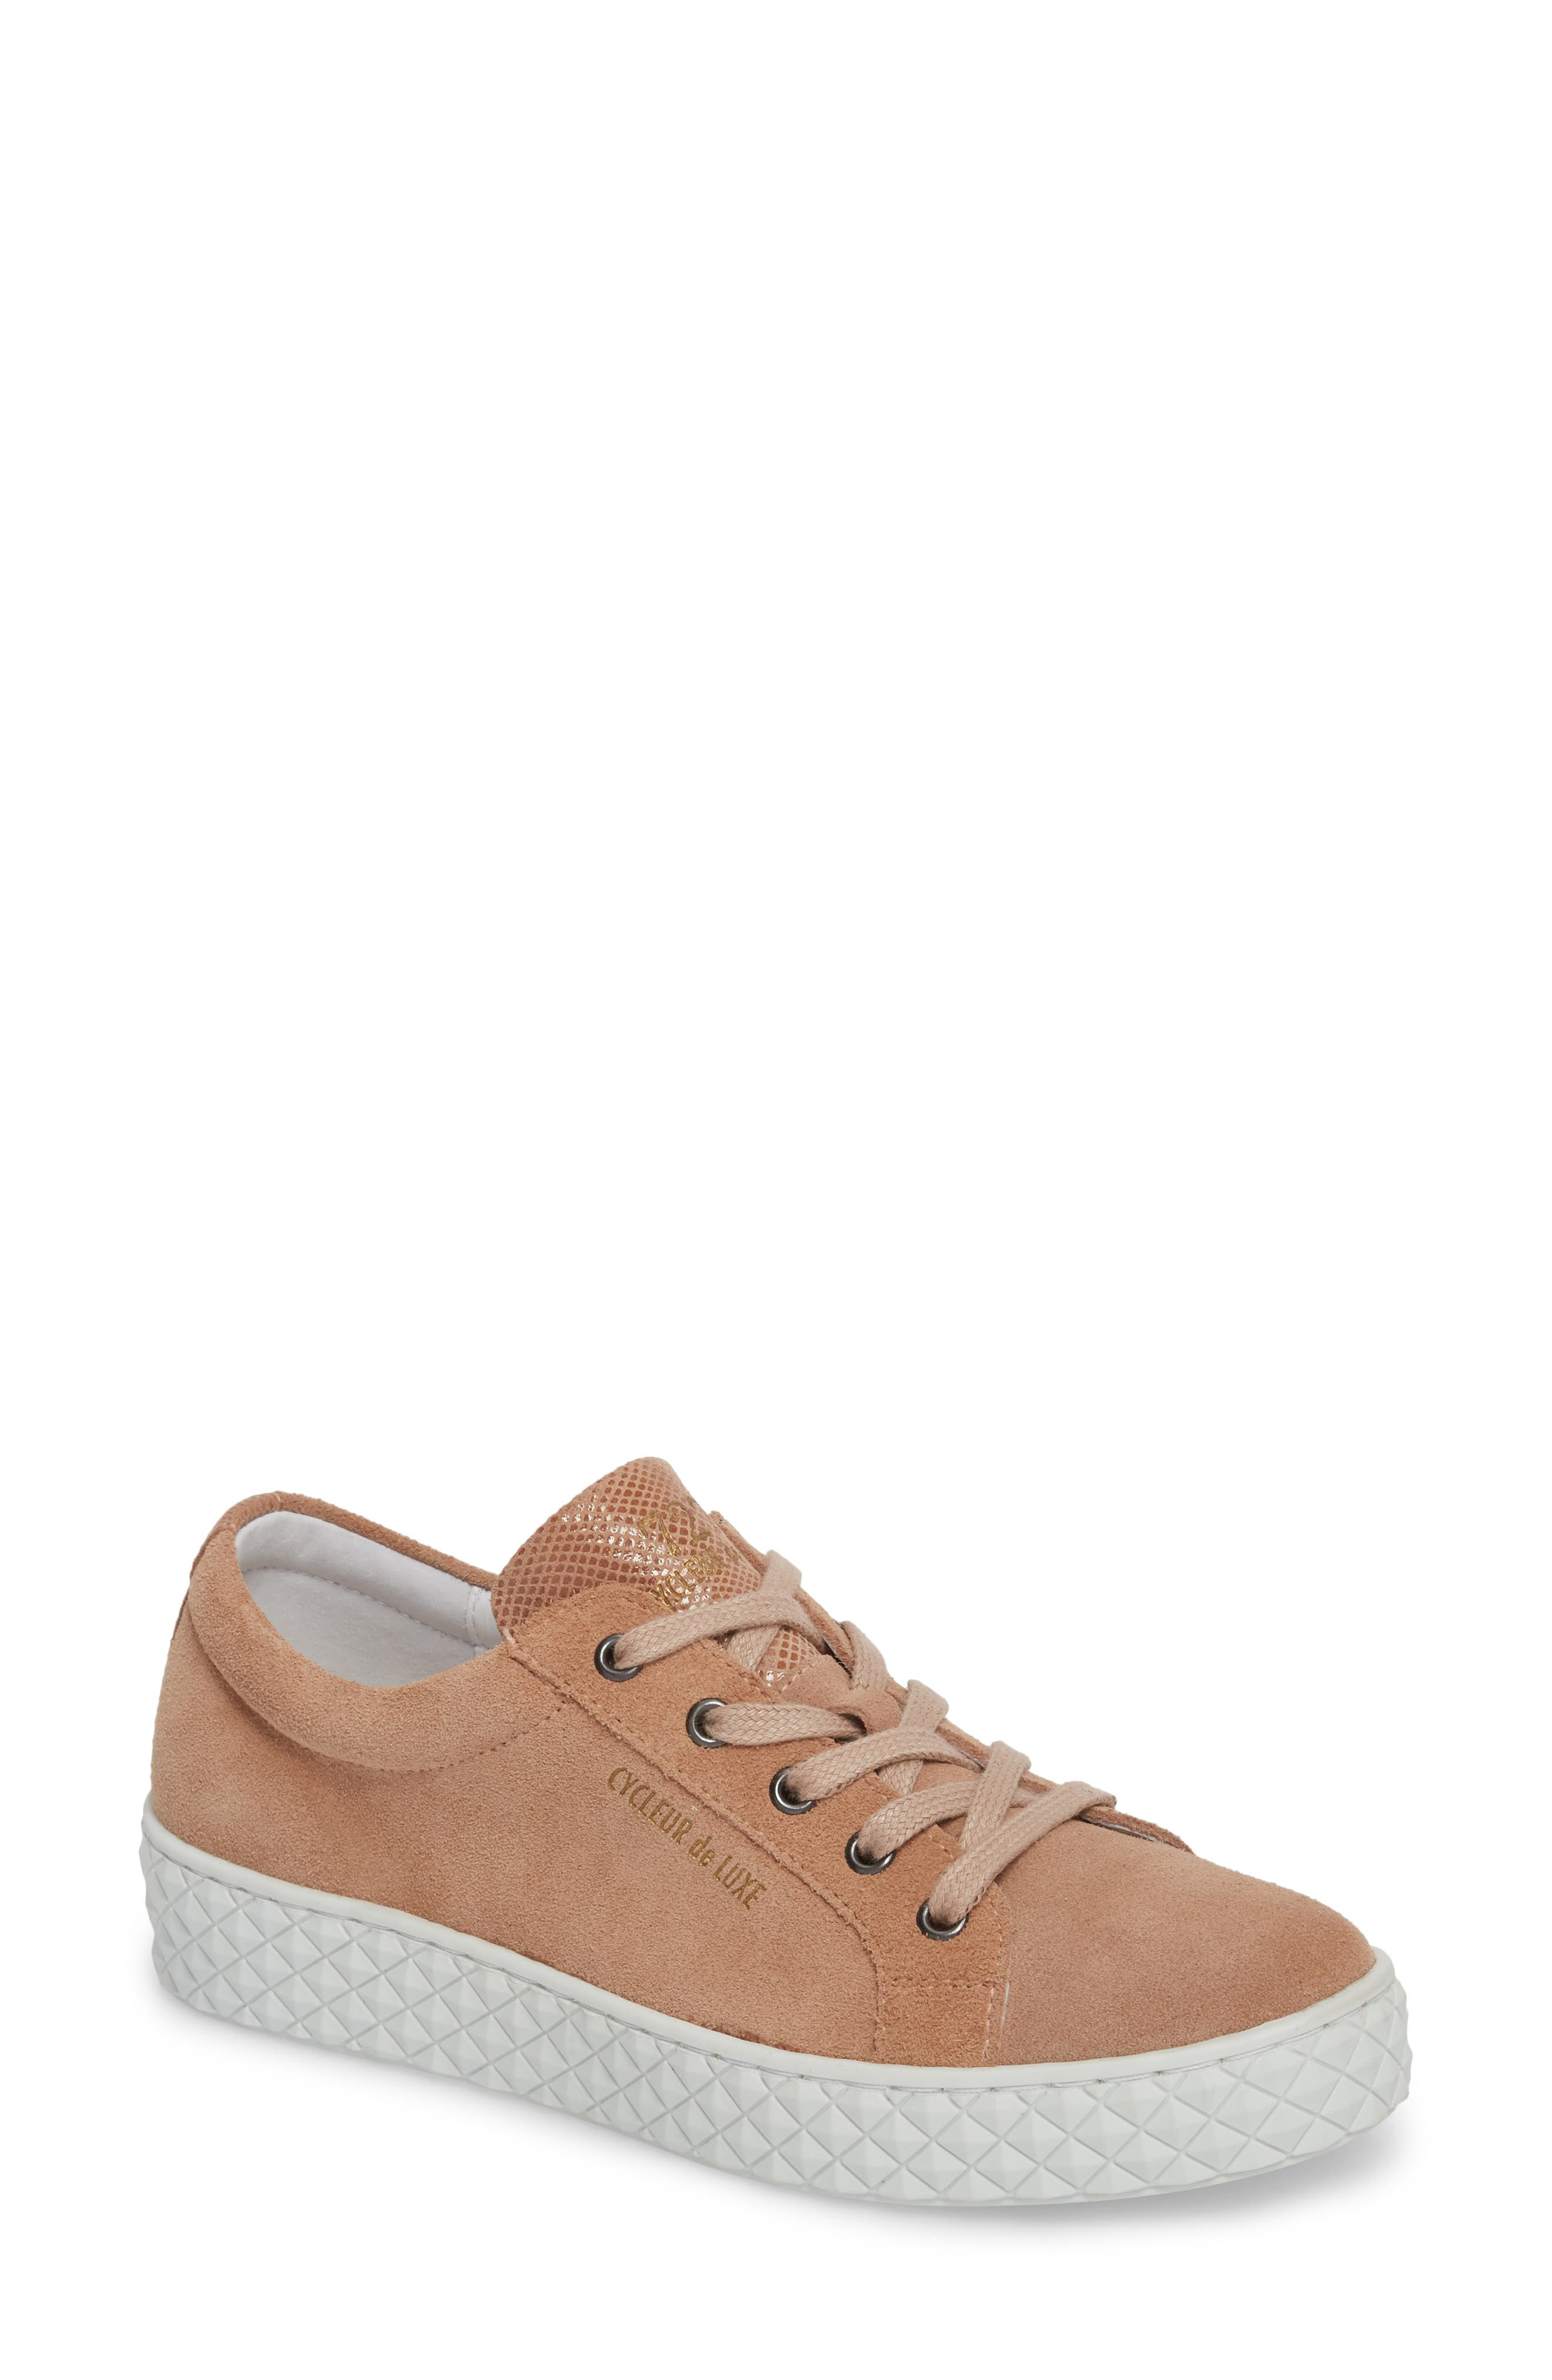 Acton II Sneaker,                             Main thumbnail 1, color,                             Dark Cipria Suede